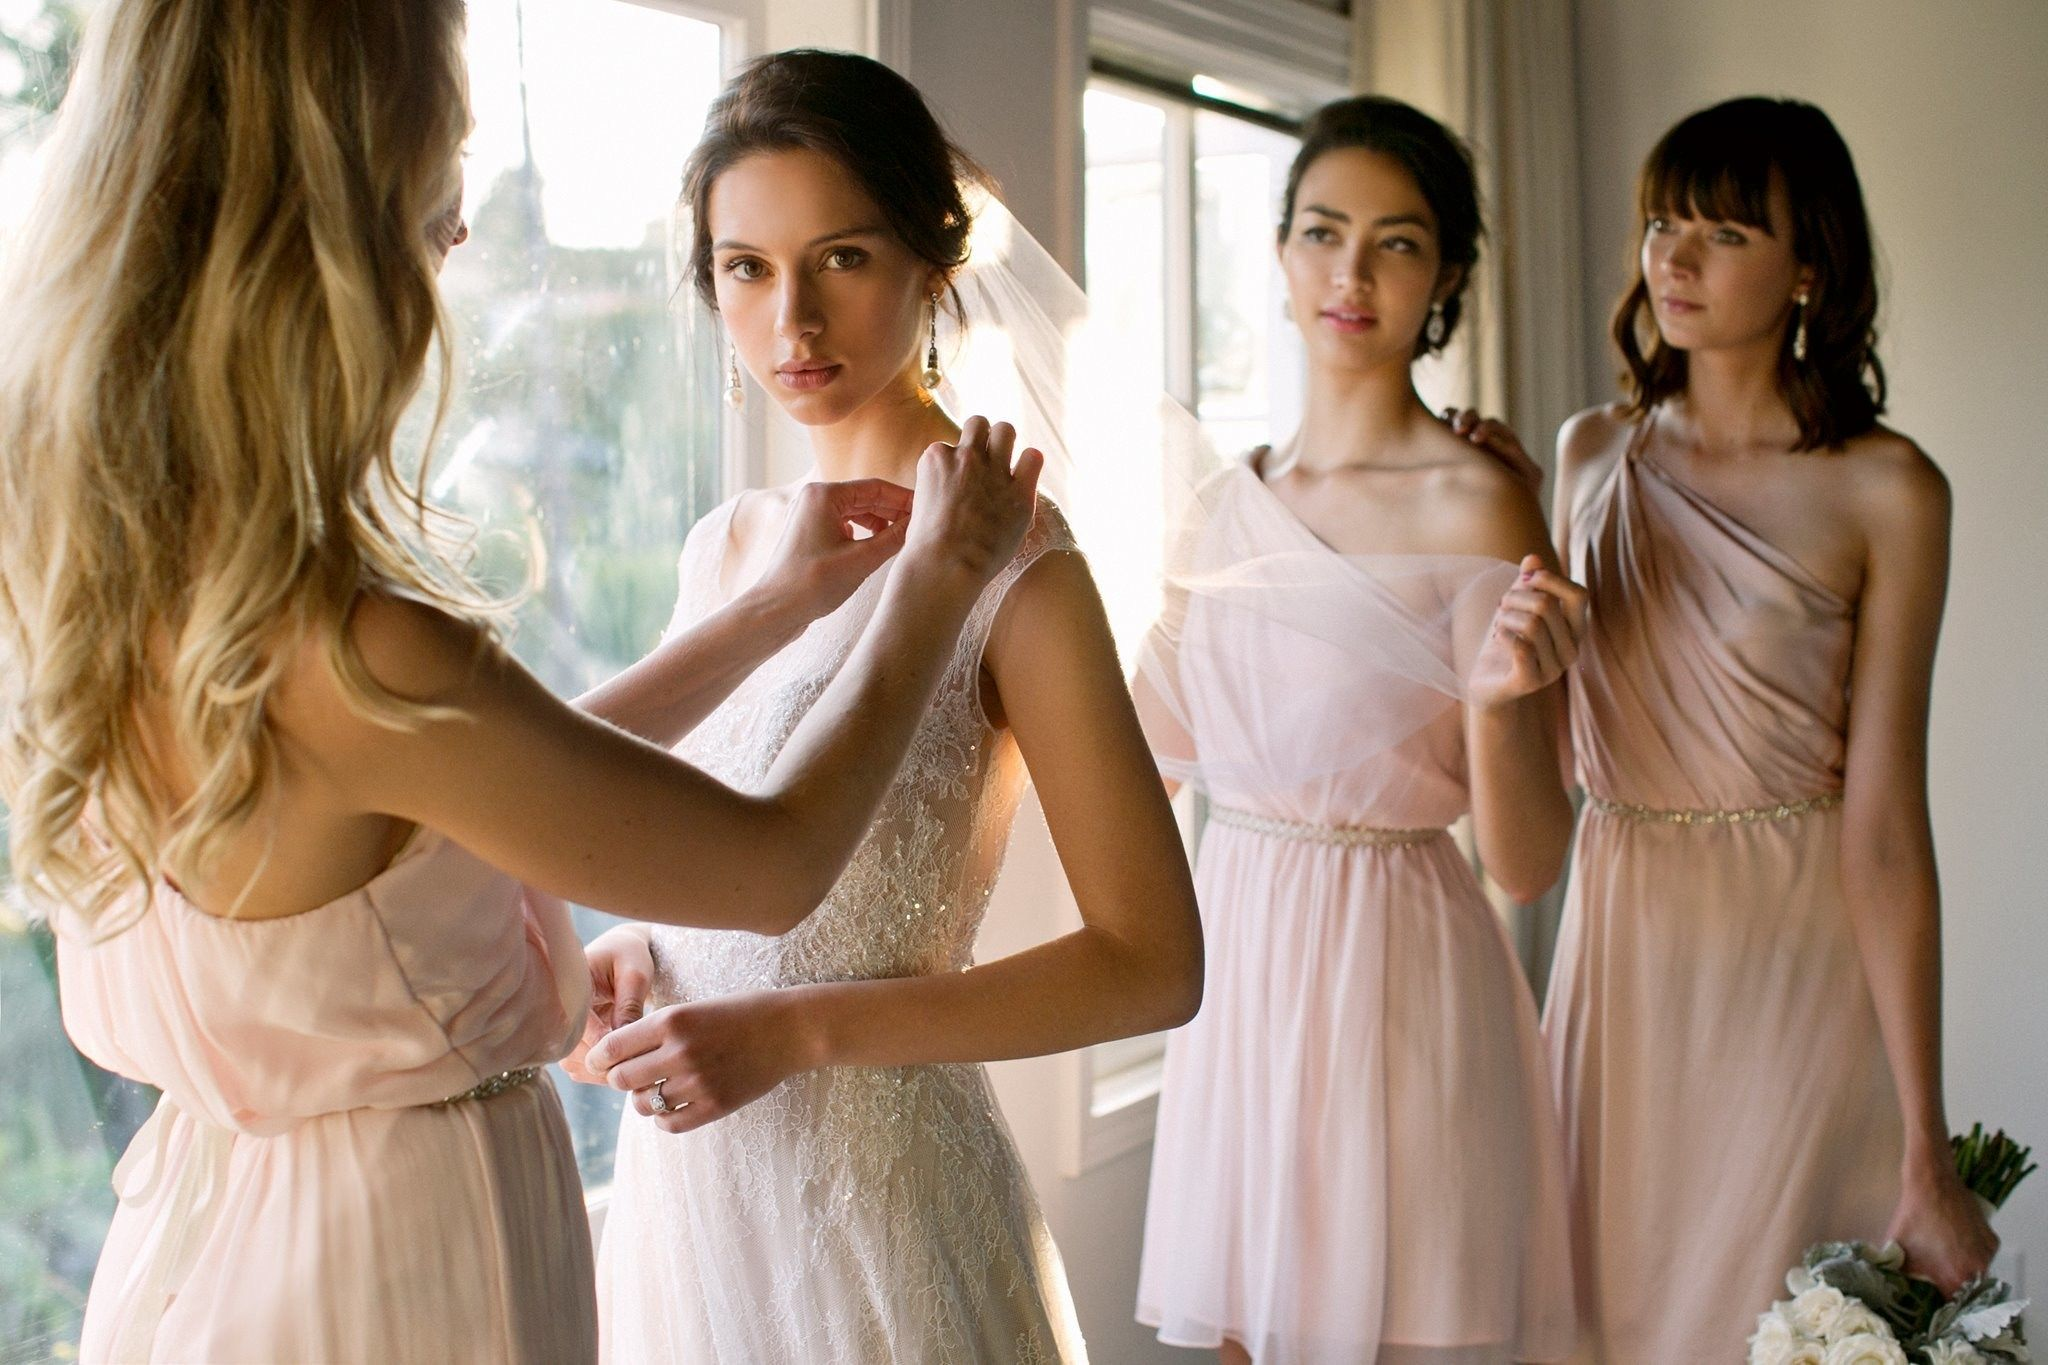 Top 4 picks for bridesmaid dresses rental sites weddings top 4 picks for bridesmaid dresses rental sites ombrellifo Choice Image